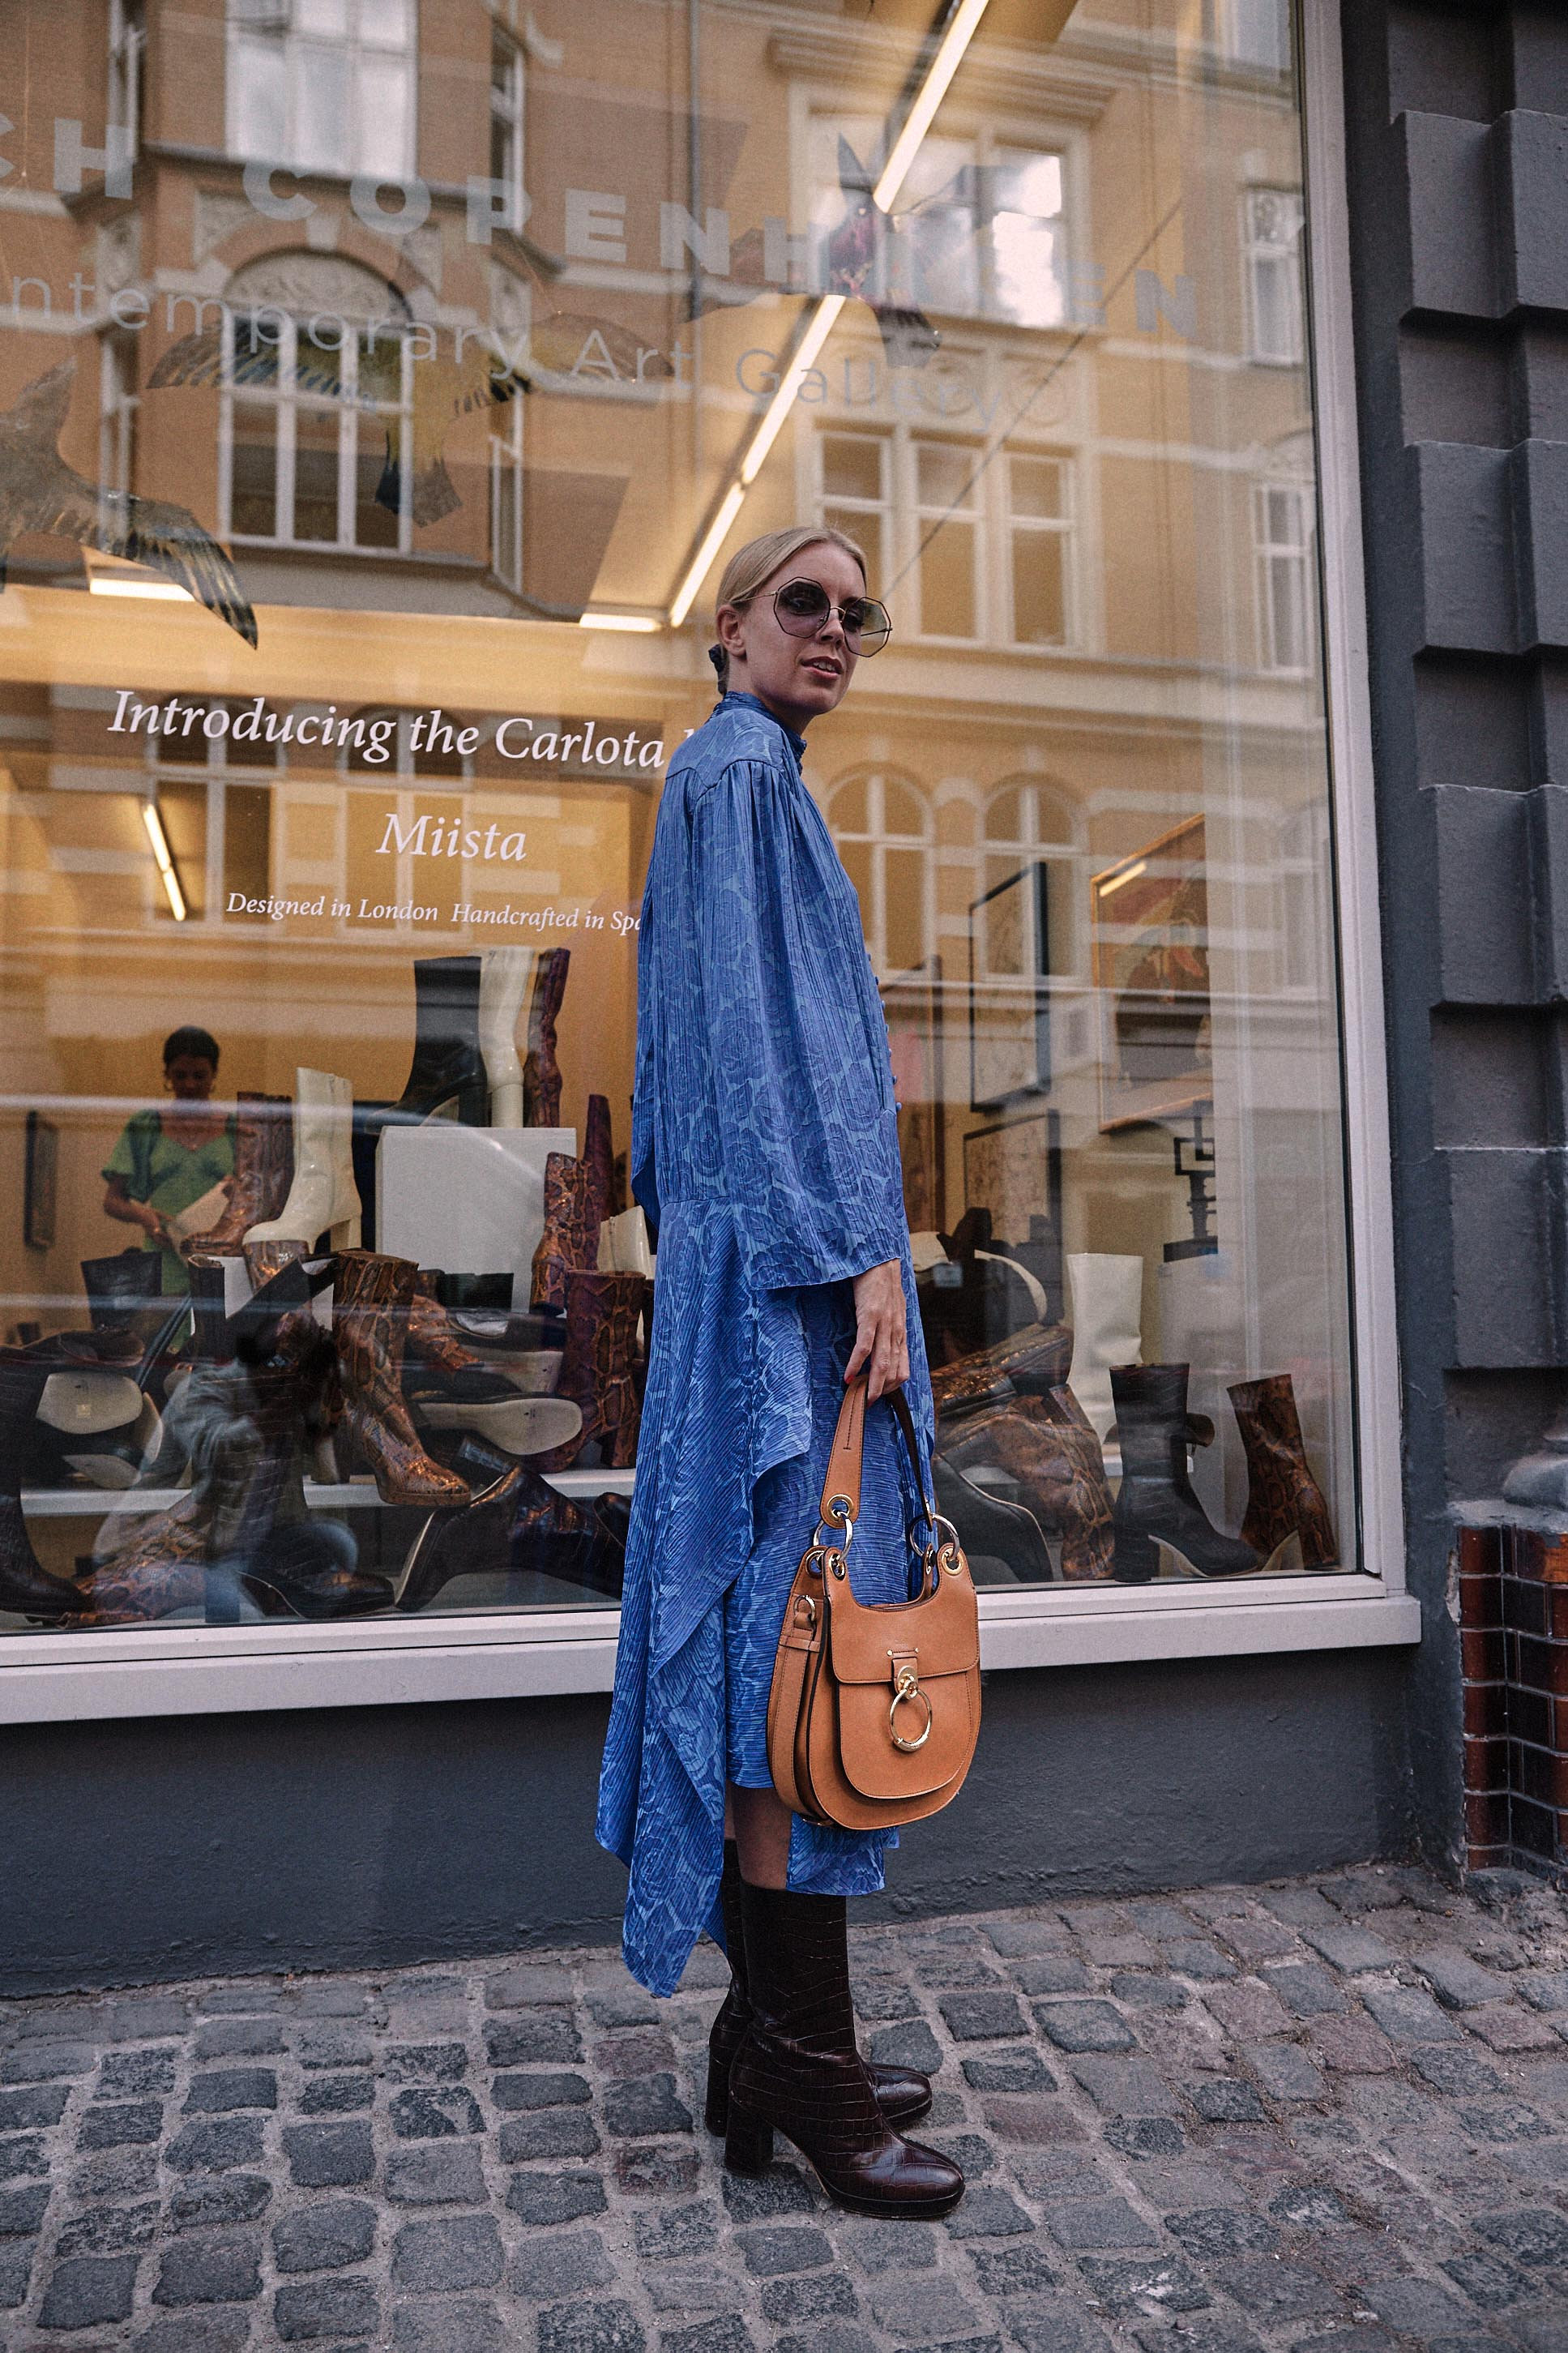 Copenhagen Fashion Week Streetstyle shot for Miista by Paul Perelka